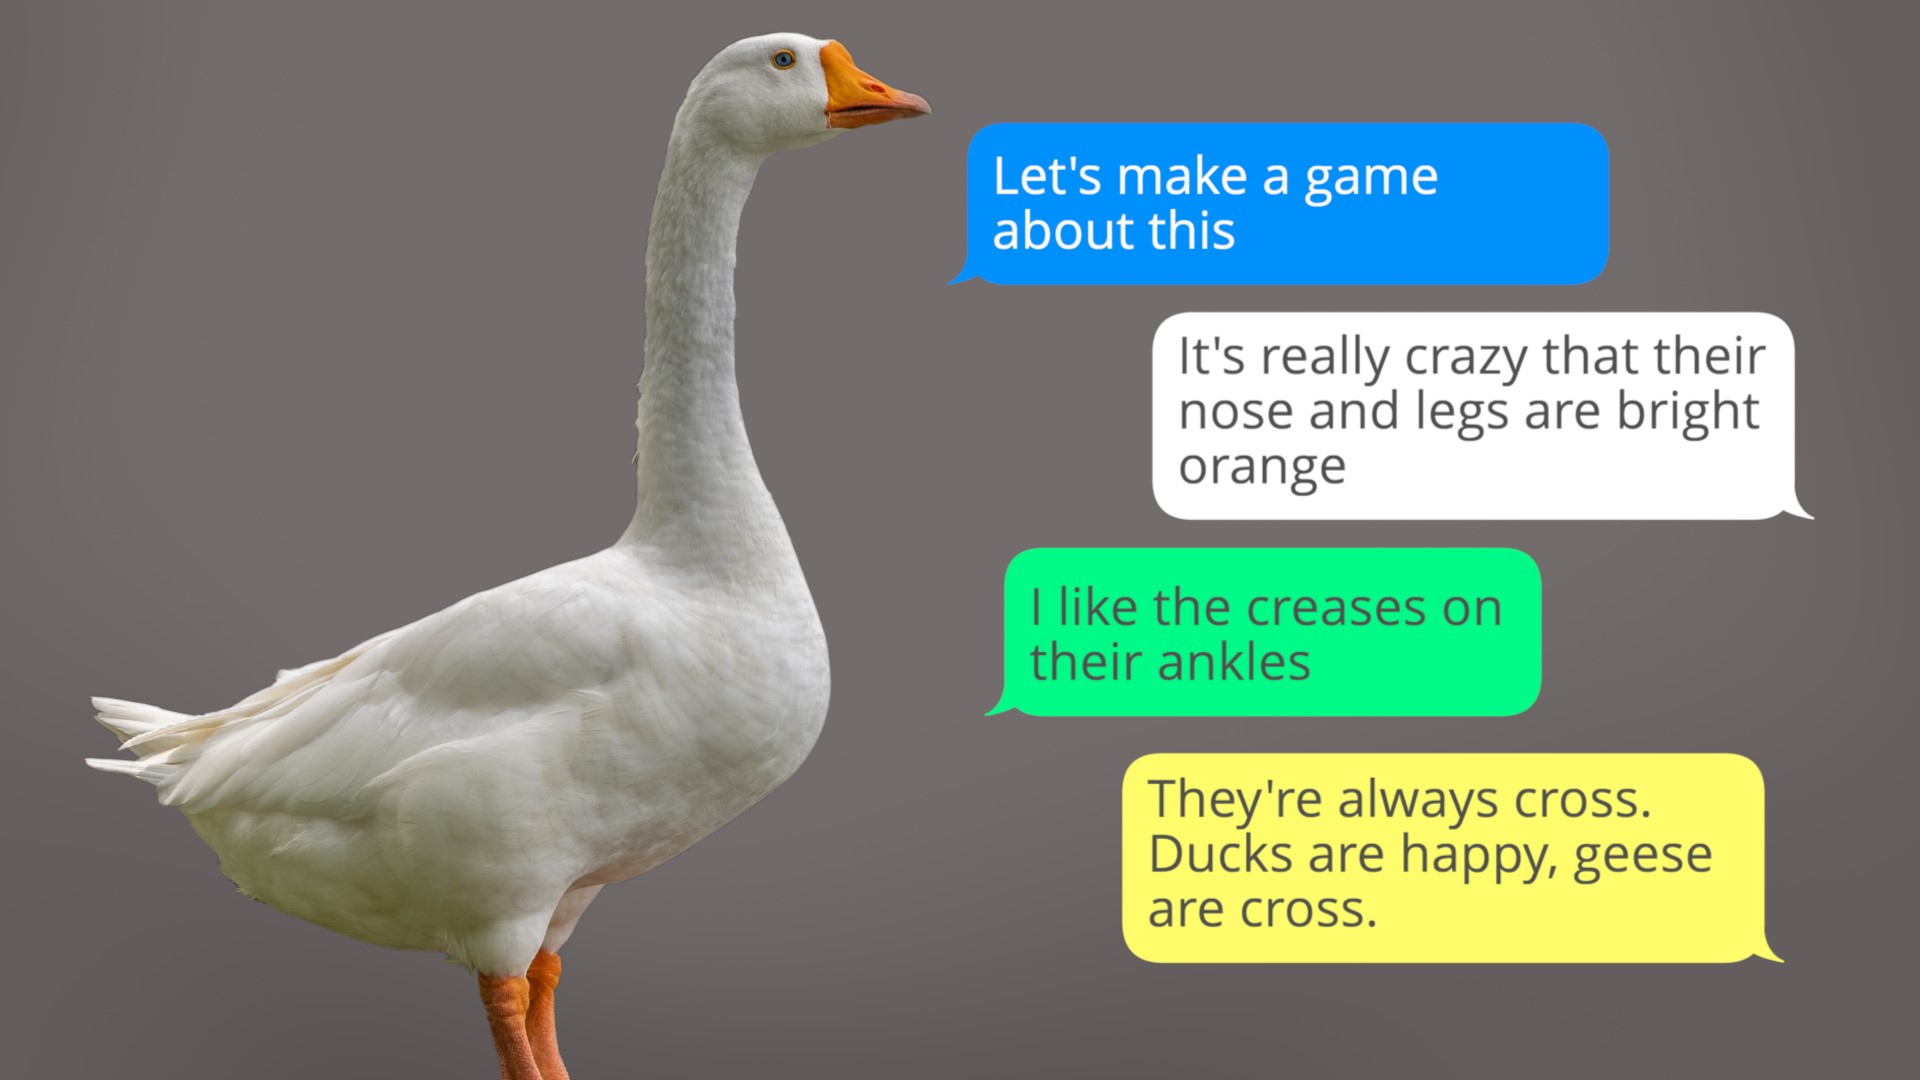 A group chat with a photo of a goose in it